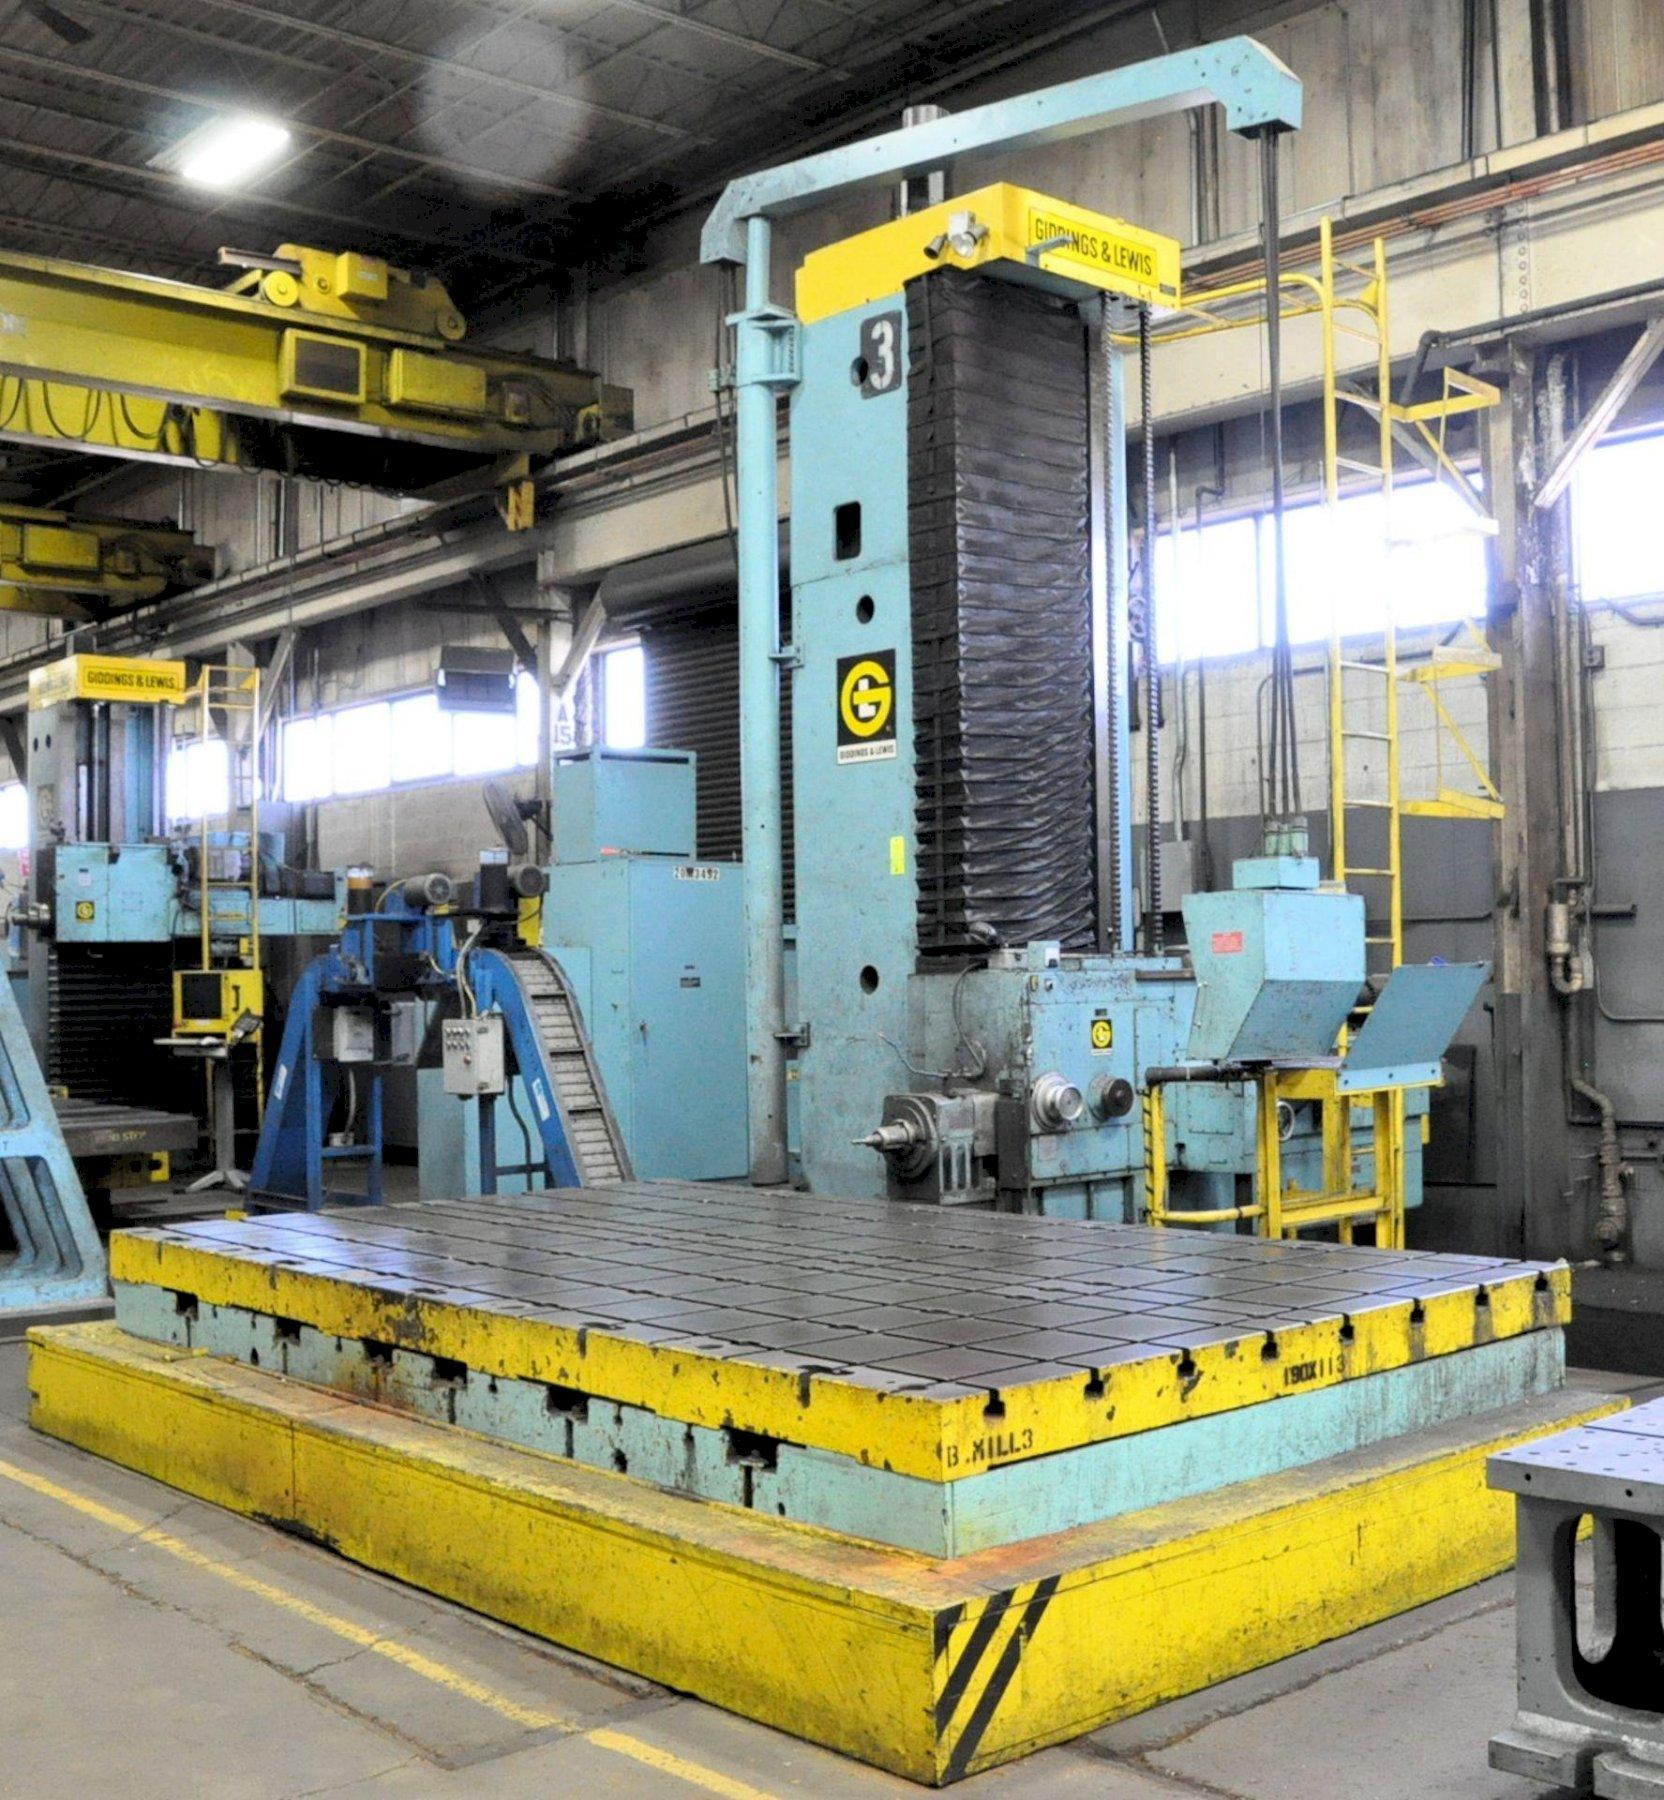 "6"" Giddings & Lewis Model 70-H6-UF, Floor Type CNC Horizontal Boring Mill,  180"" x 96"" T-Slotted Table Size, 192"" X-Axis, 113"" Y-Axis, 48"" Z-Axis, Chip Conveyor"